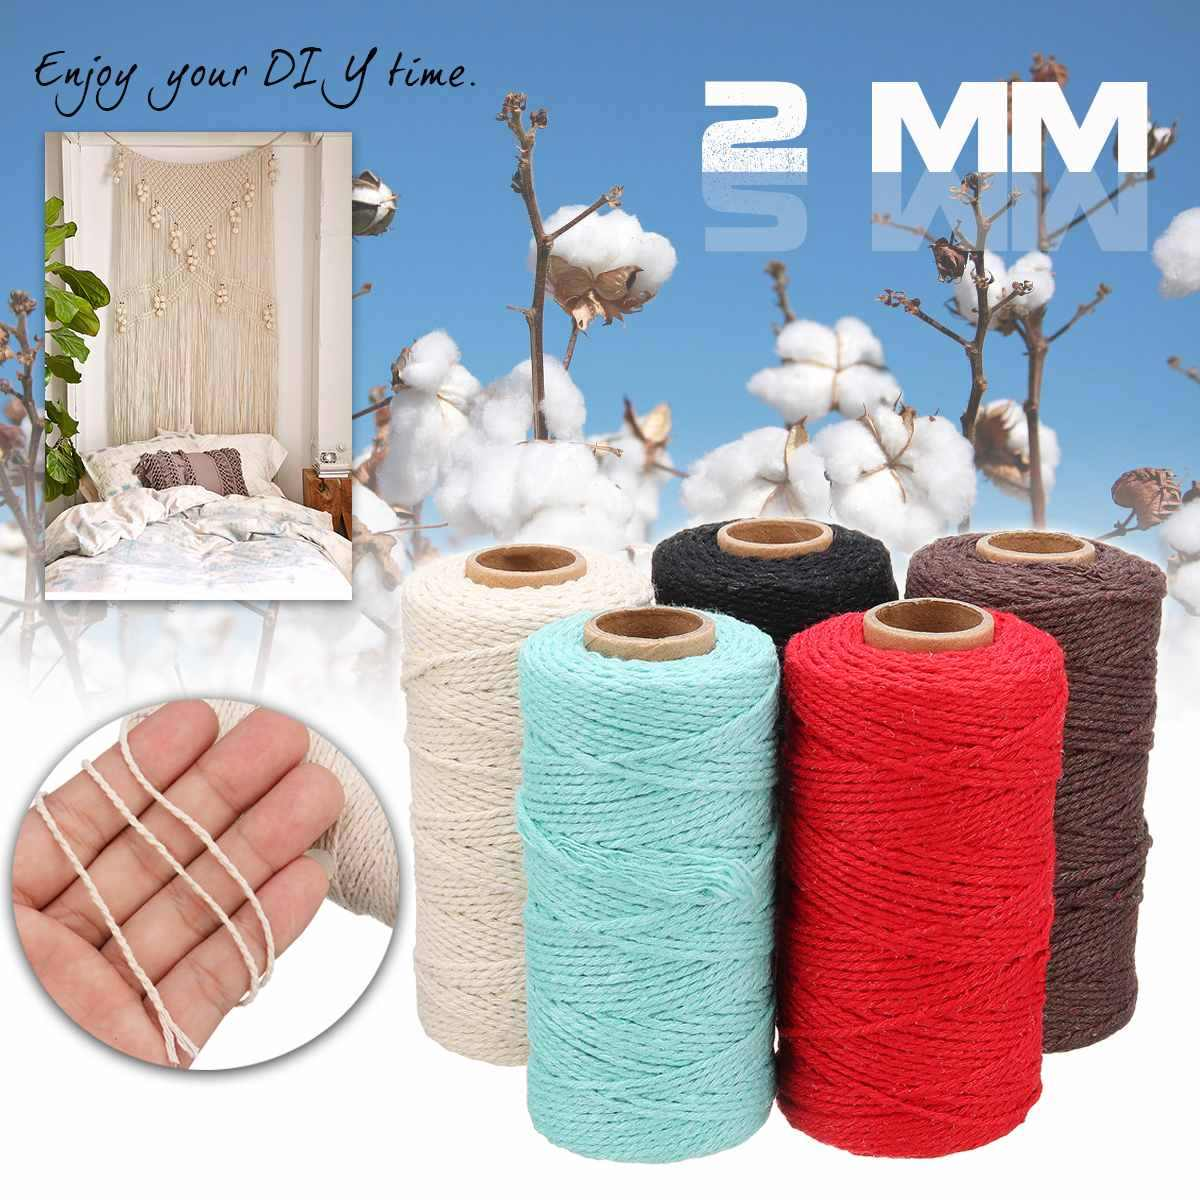 Pure Cotton Cords Sewing Thread String Twisted Macrame Cord 100m Long/100 Yards DIY Wedding Decor Supply Handmade Rope Craft